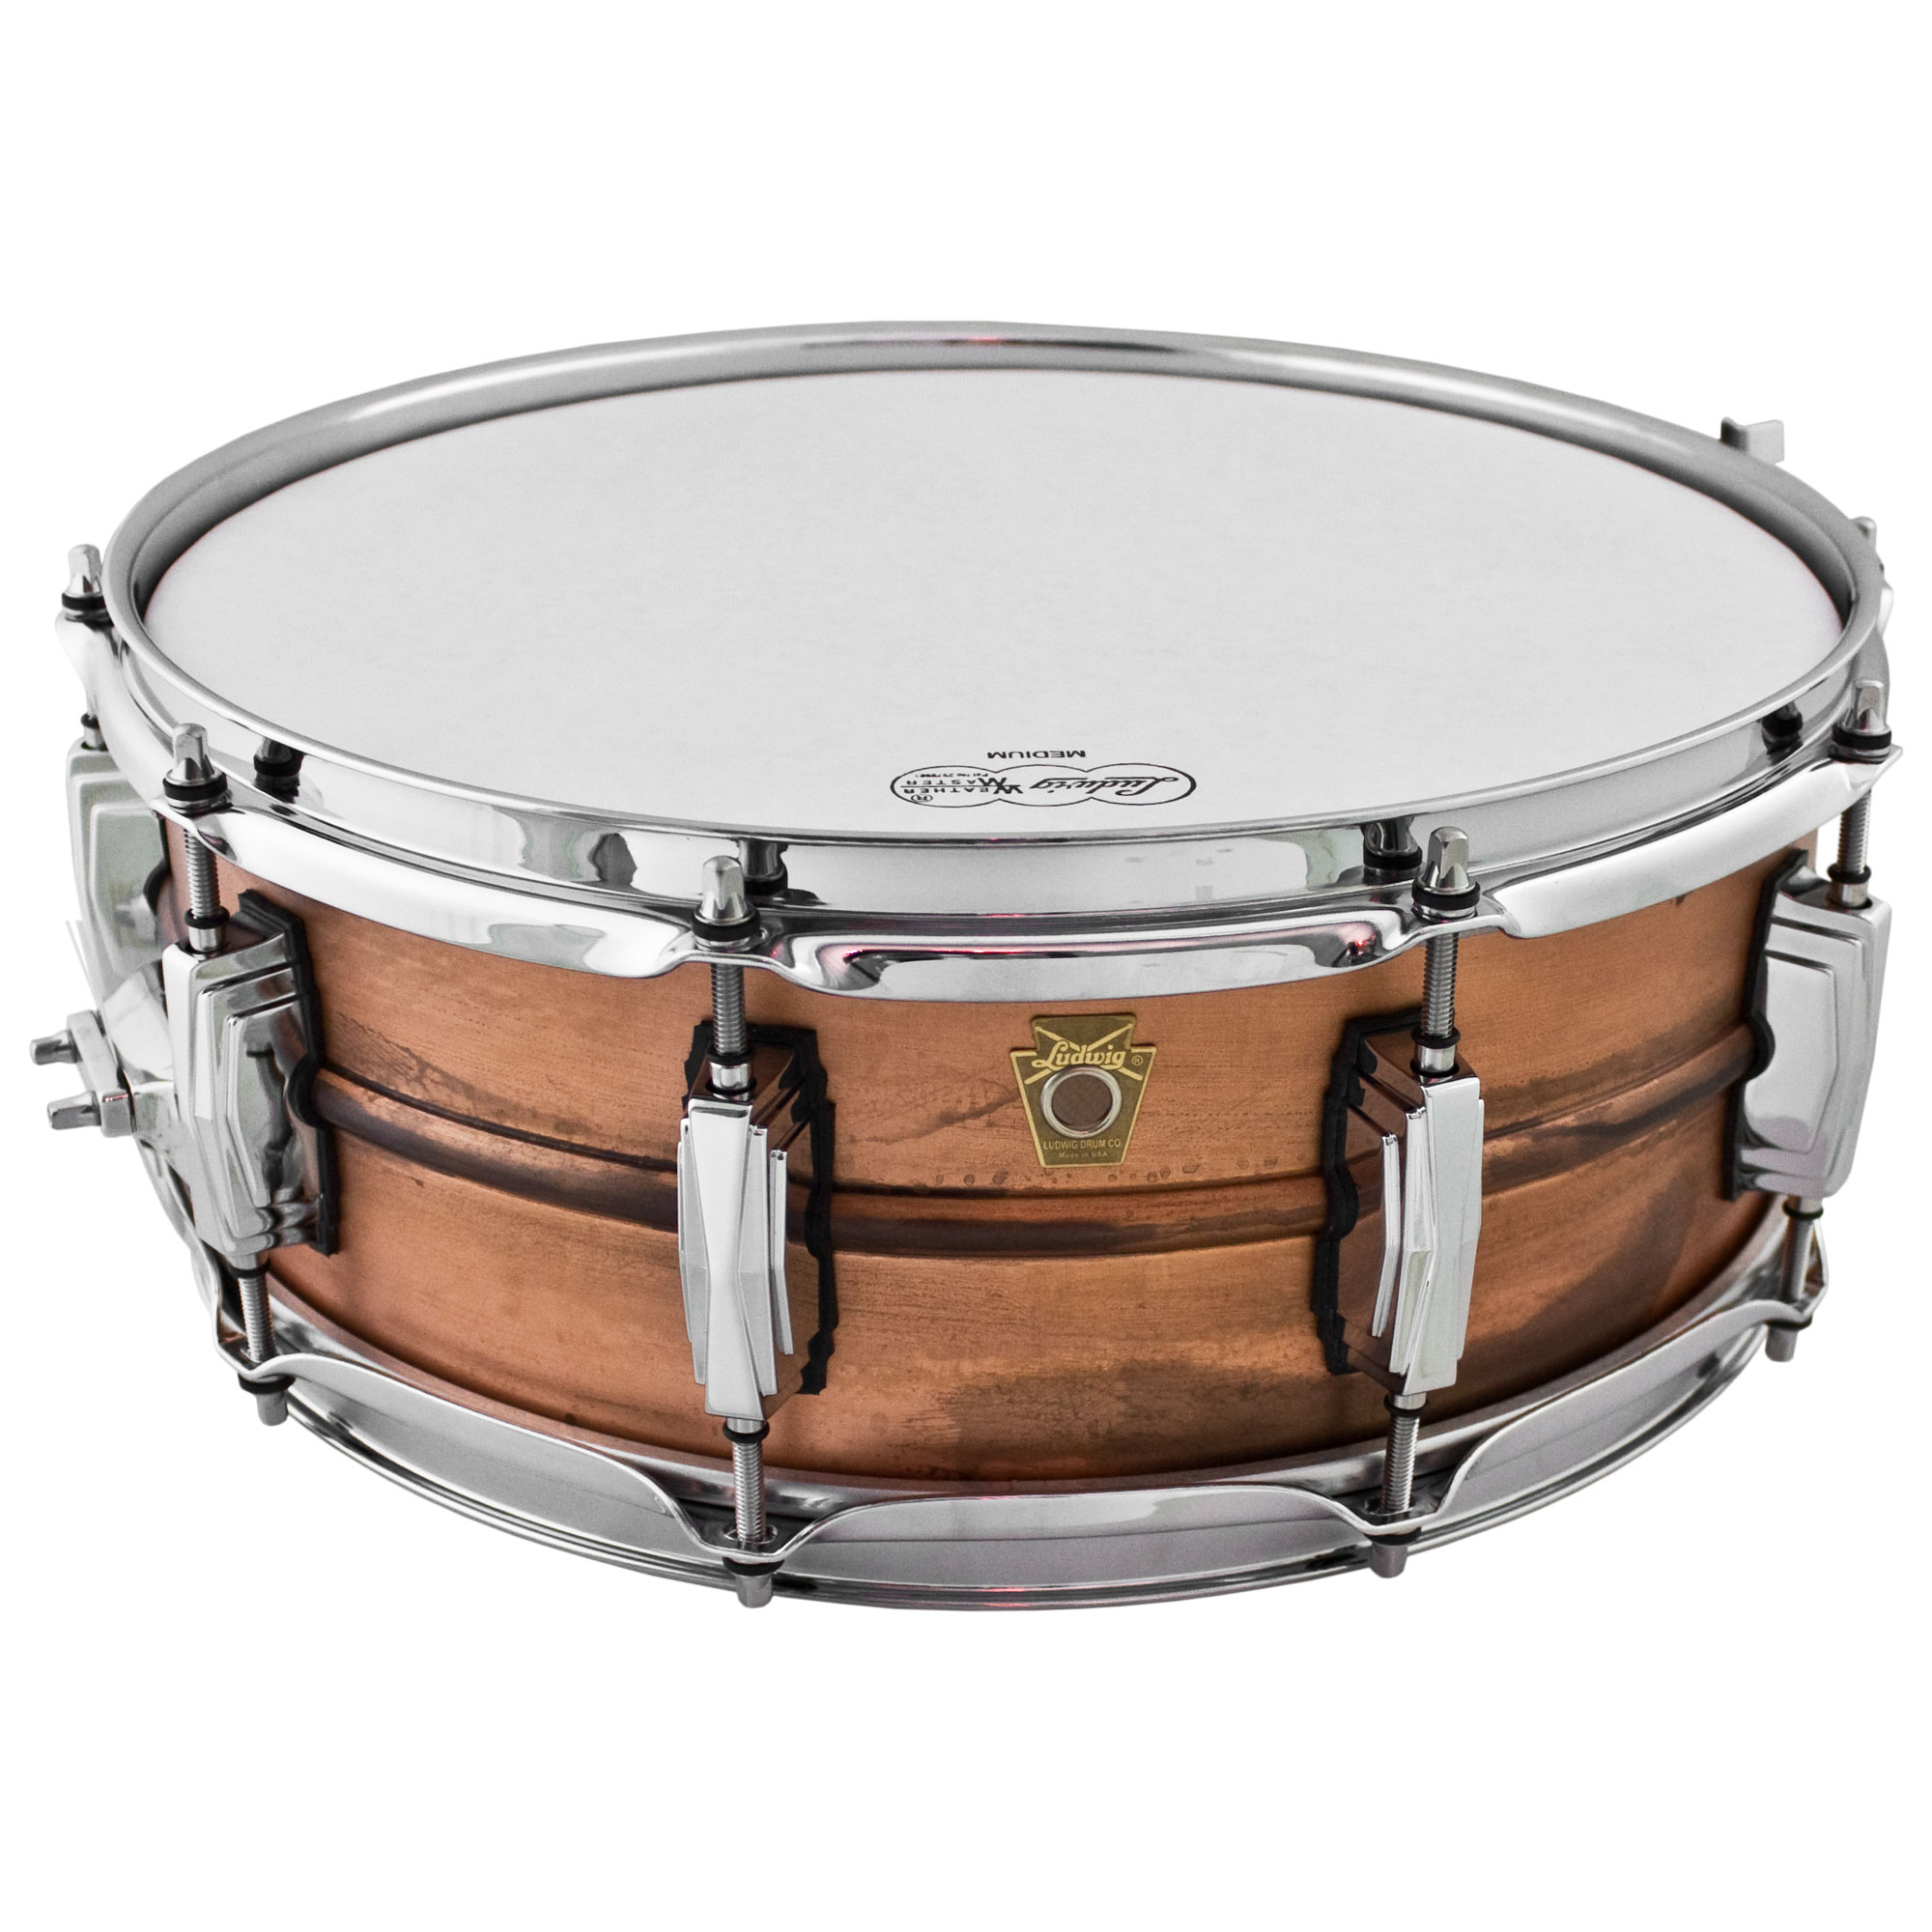 "Ludwig 5"" x 14"" Raw Copper Phonic Snare Drum with Imperial Lugs"